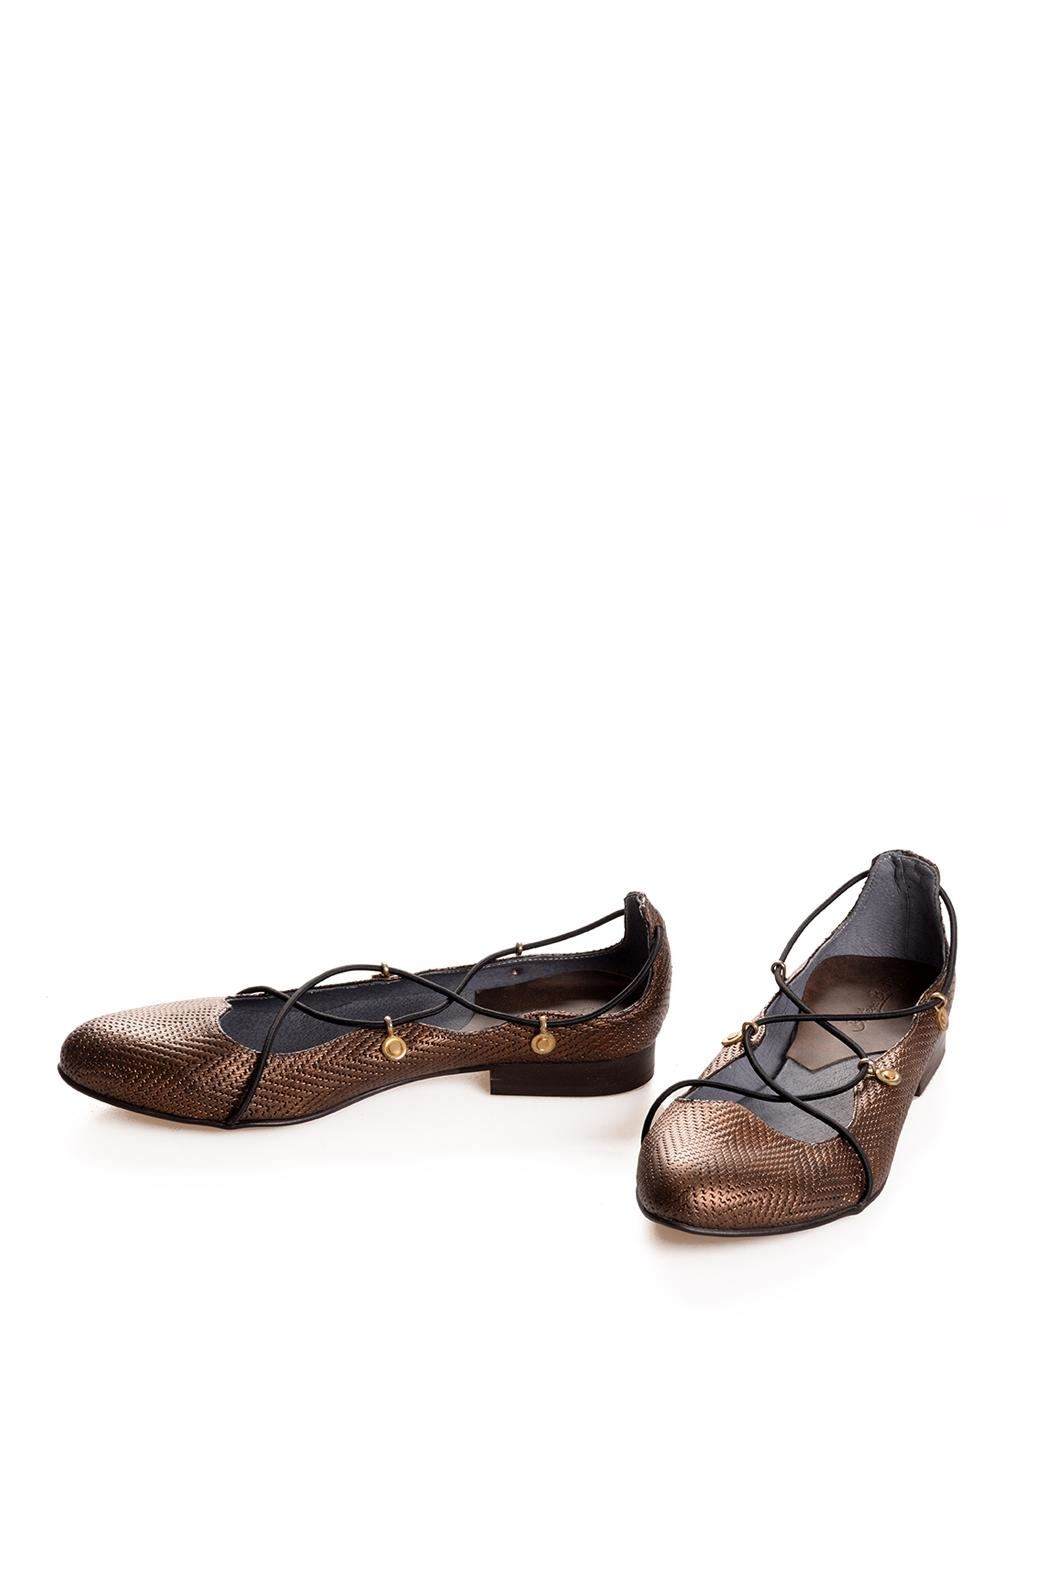 Bottega Bash Gold Leather Loafers - Side Cropped Image